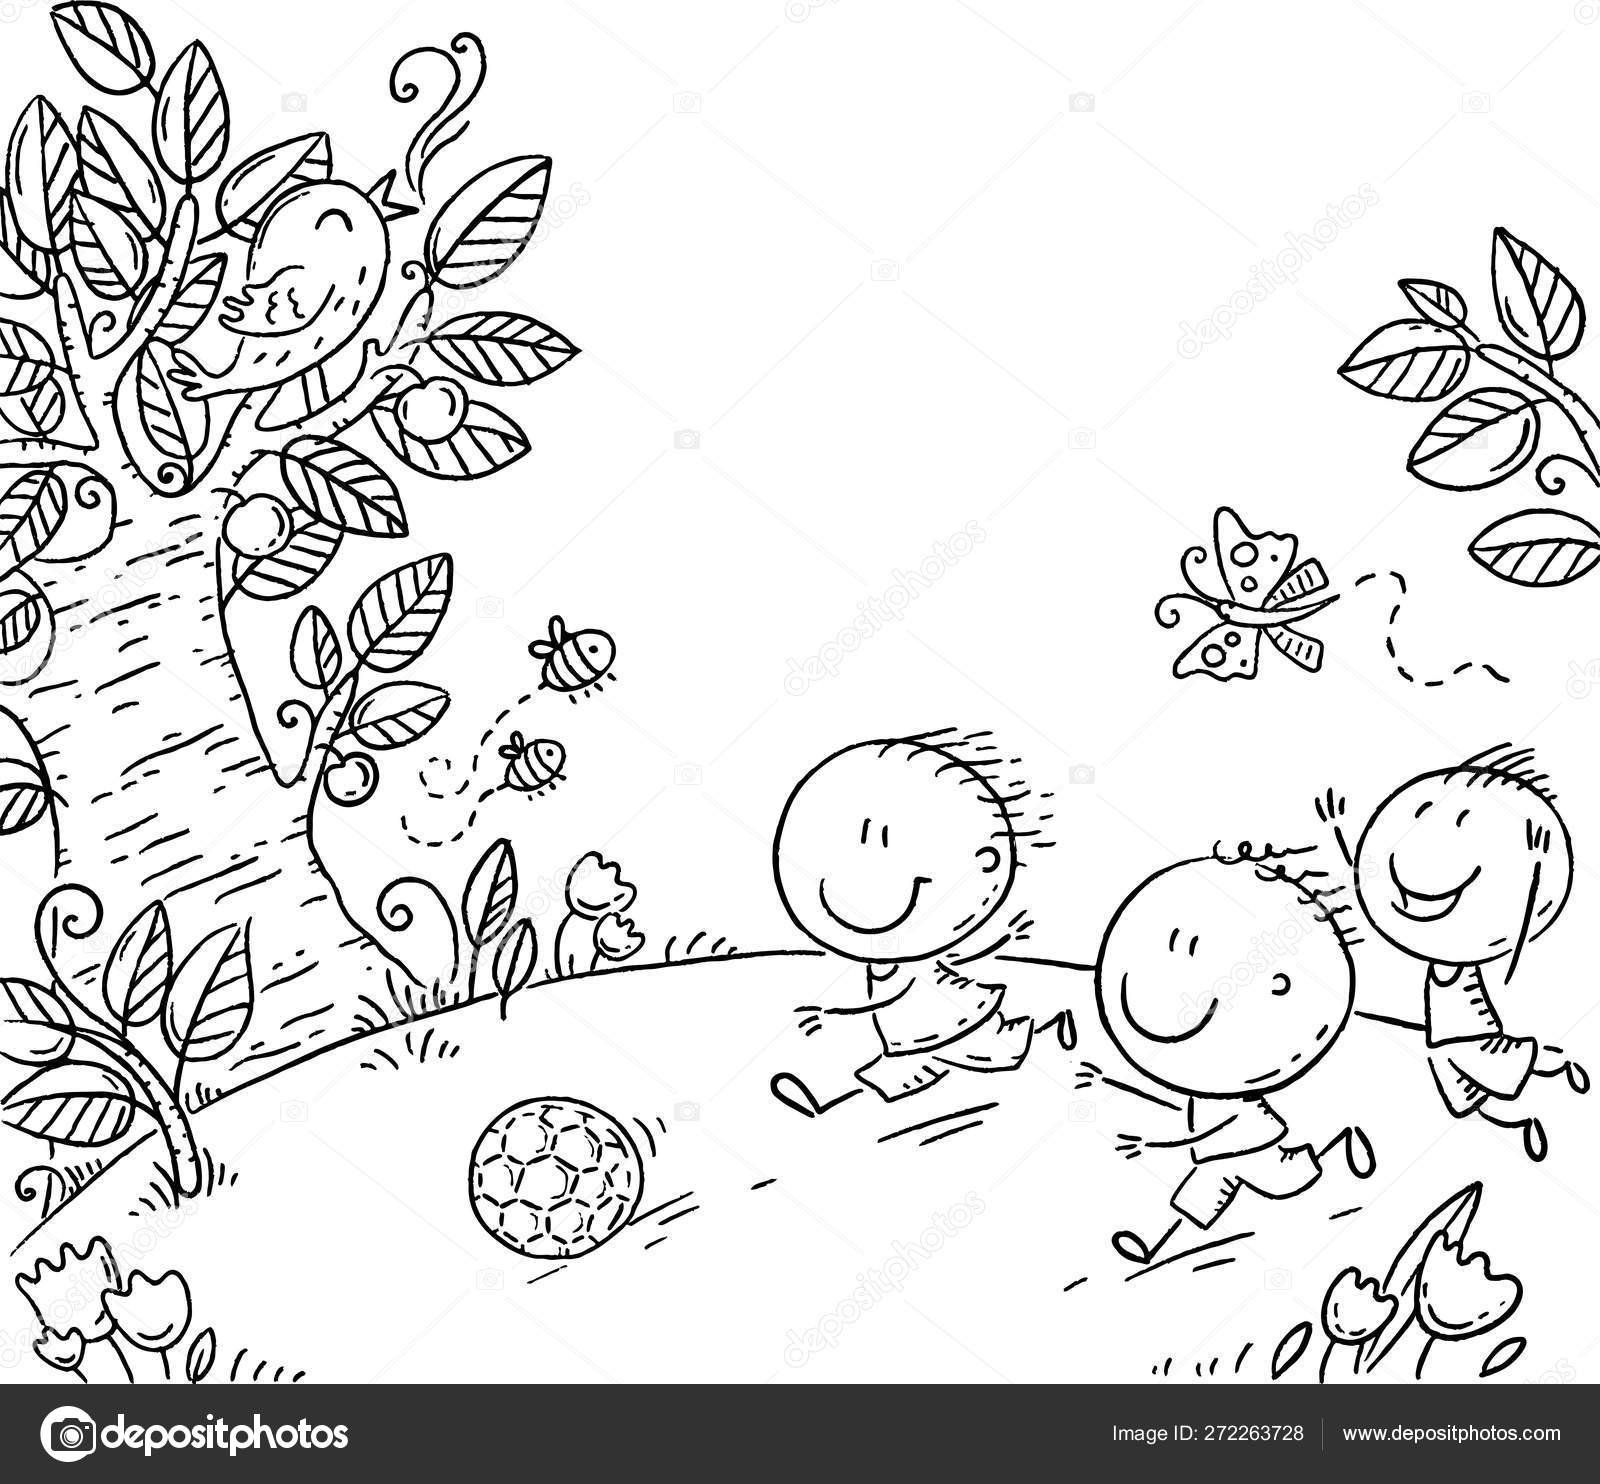 Free Kids Playing Outside Clipart Black And White, Download Free Clip Art,  Free Clip Art on Clipart Library